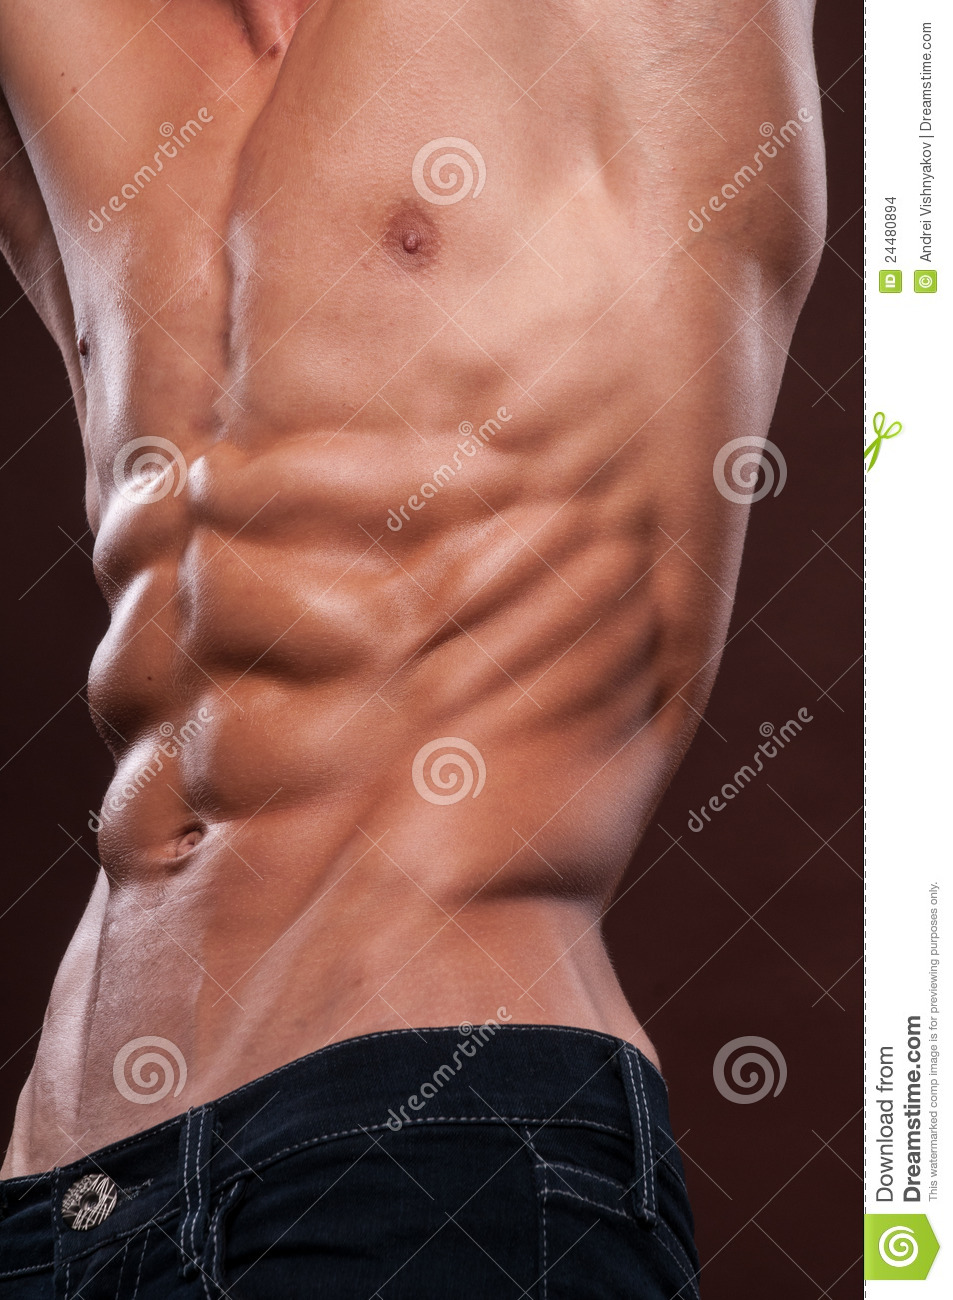 Torso with six pack stock image. Image of pack, abdomen